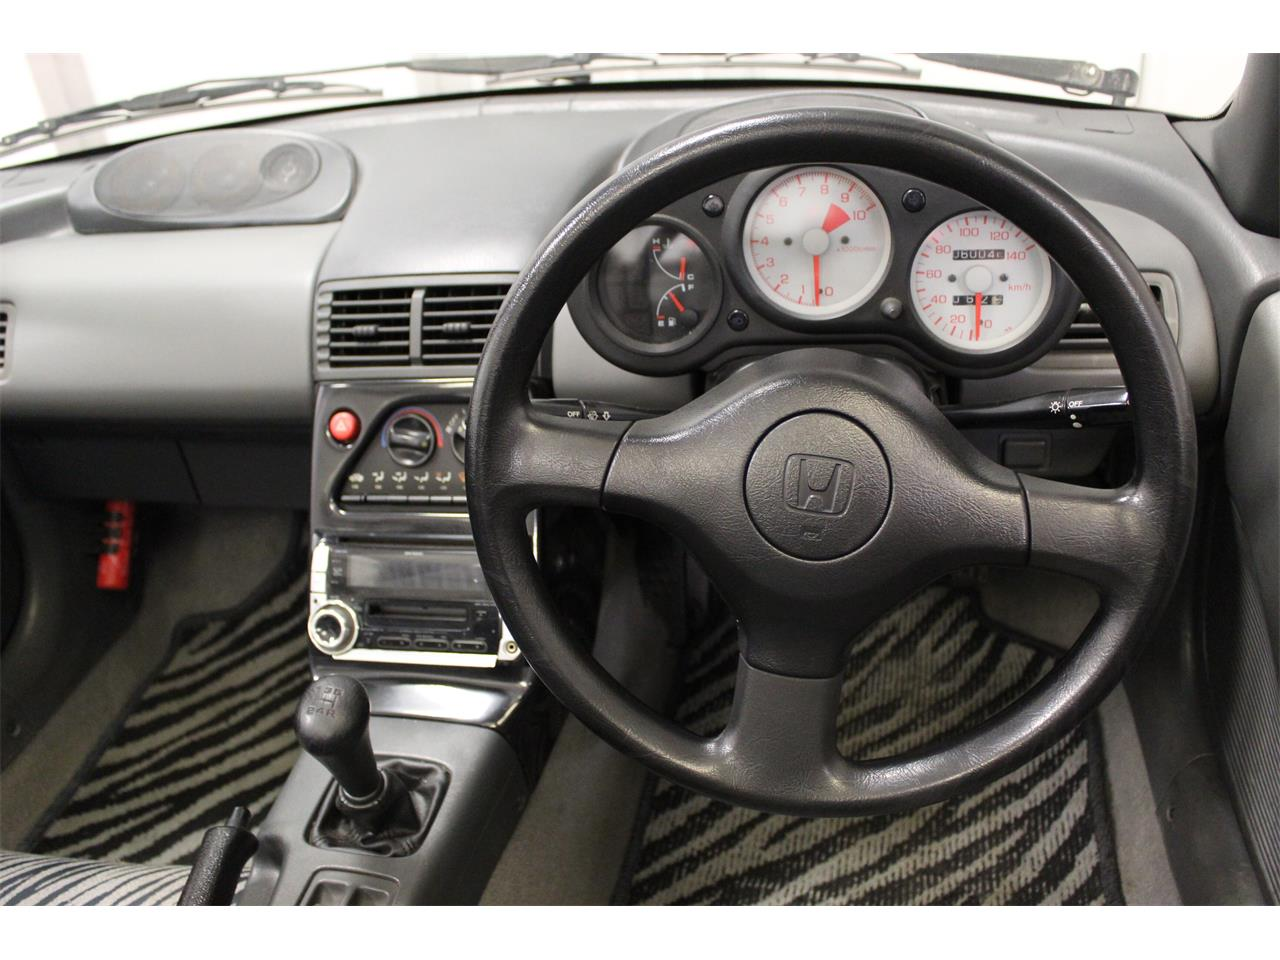 Large Picture of '91 Honda Beat located in Virginia Offered by Duncan Imports & Classic Cars - P40U